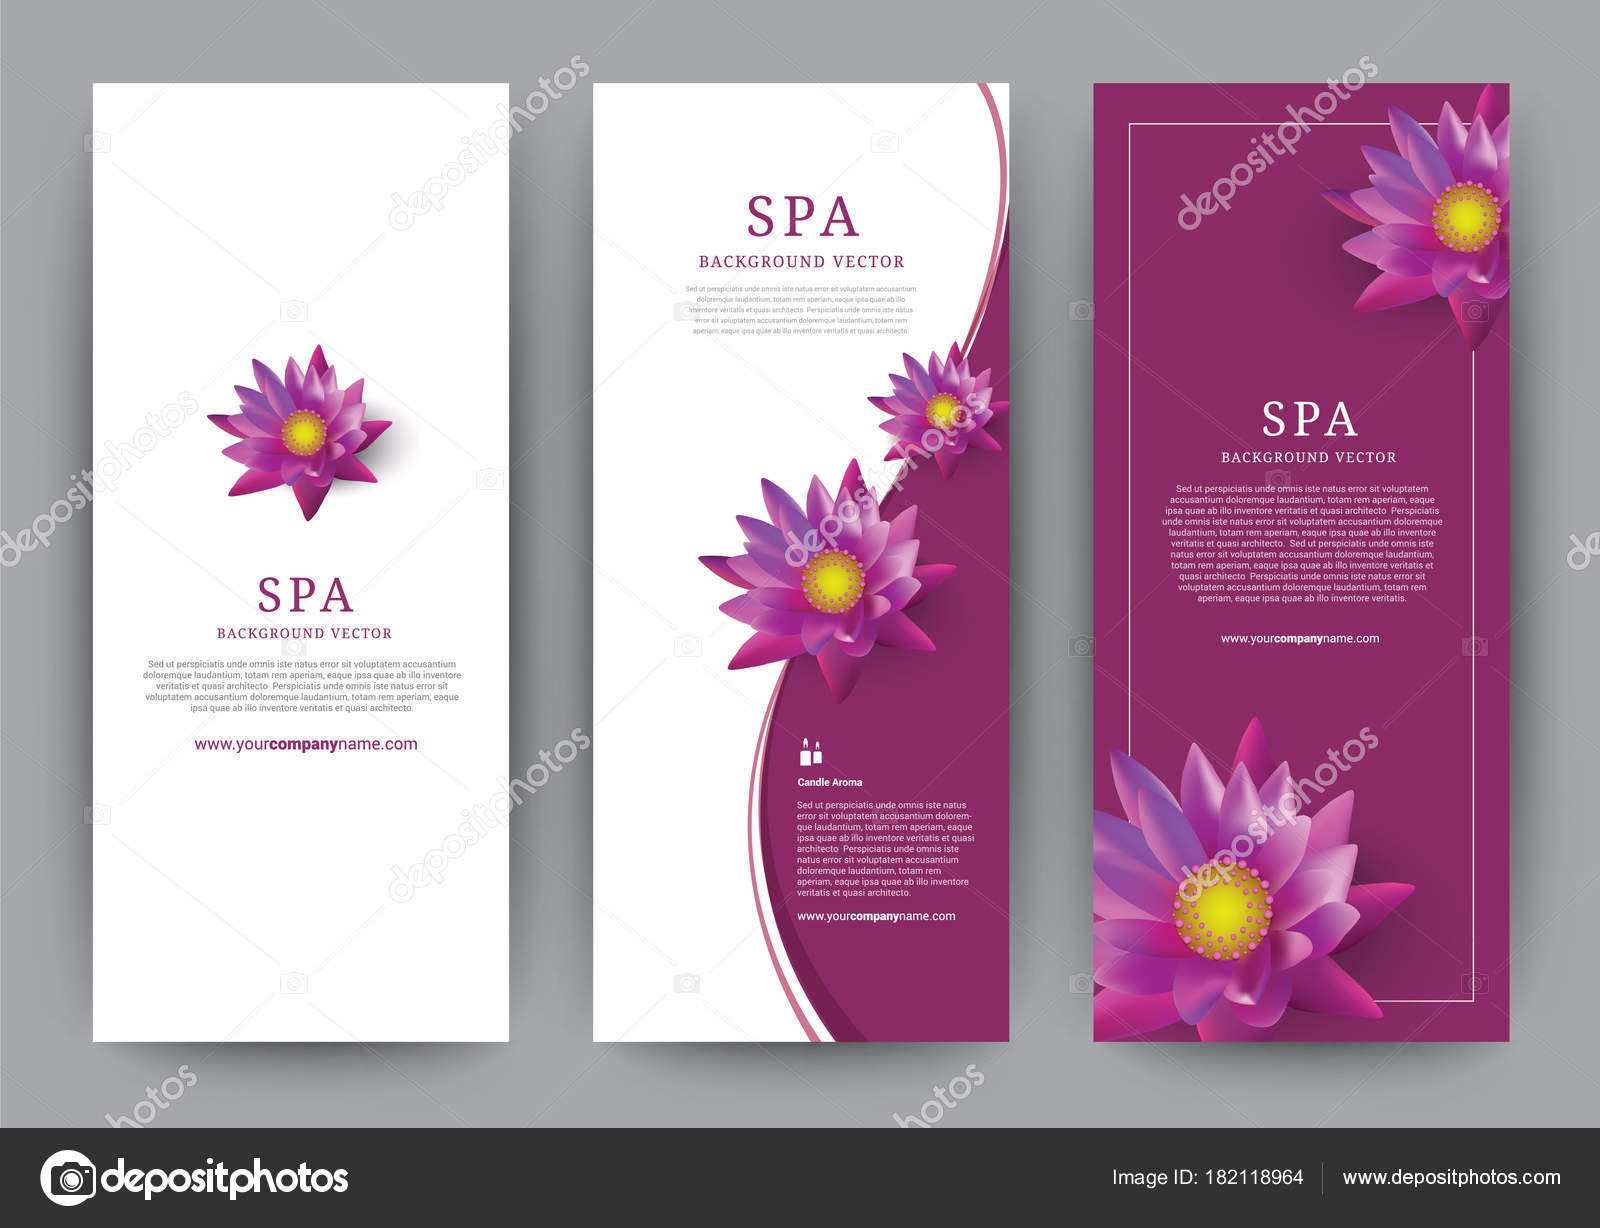 Lotus Flower Flora Banner Vector For Hotel Salon Beauty Resort And Spa Vector Illustration Stock Vector C Meowyomsee 182118964